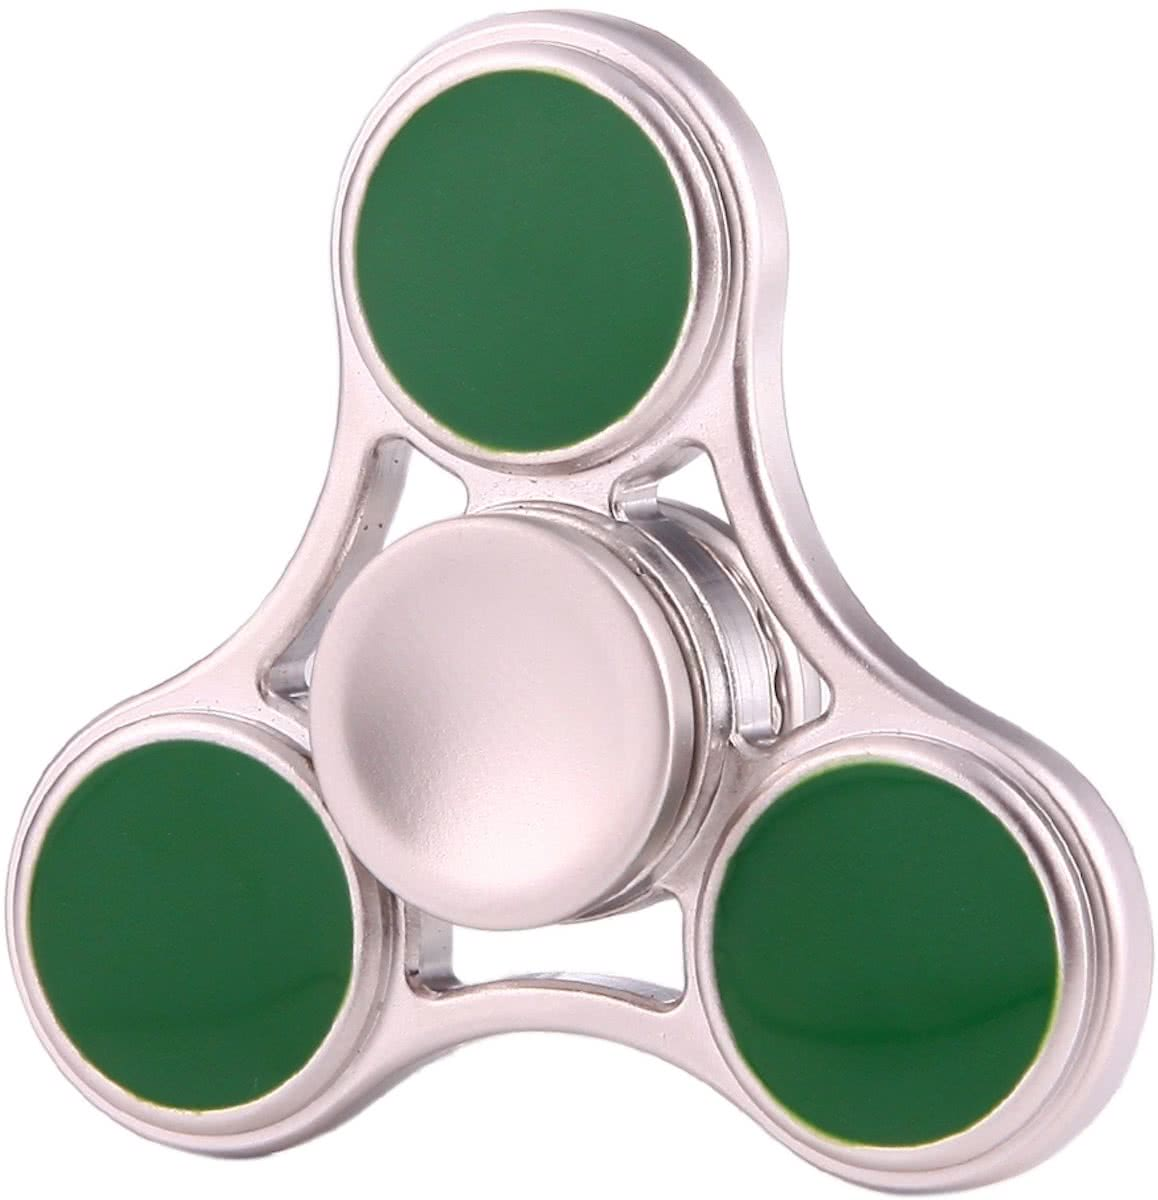 Zinc Alloy   Spinner Toy Stress rooducer Anti-Anxiety Toy voor Children en Adults, 5 Minutes Rotation Time, Small Steel Beads Bearing, Three Leaves(groen)